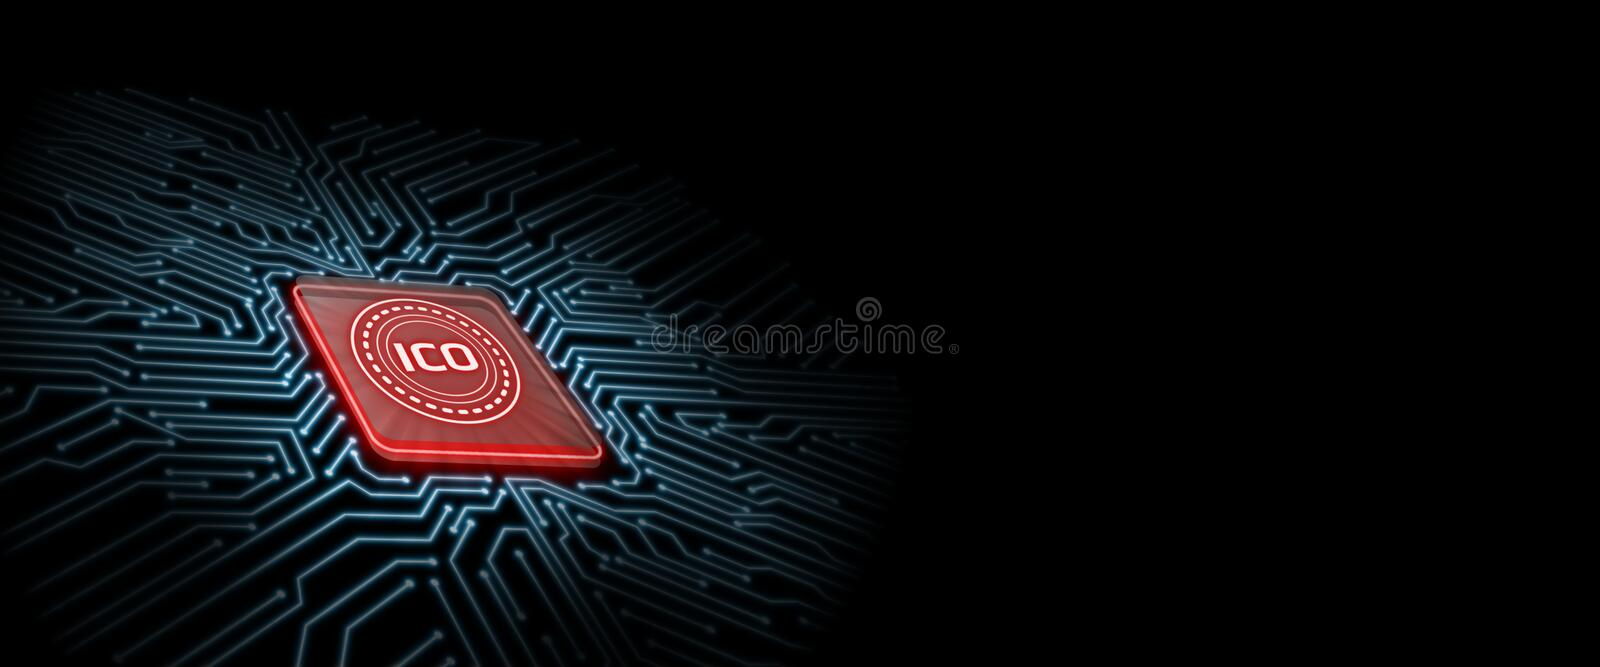 ICO led glow on red computer chip with circuit board background. stock illustration